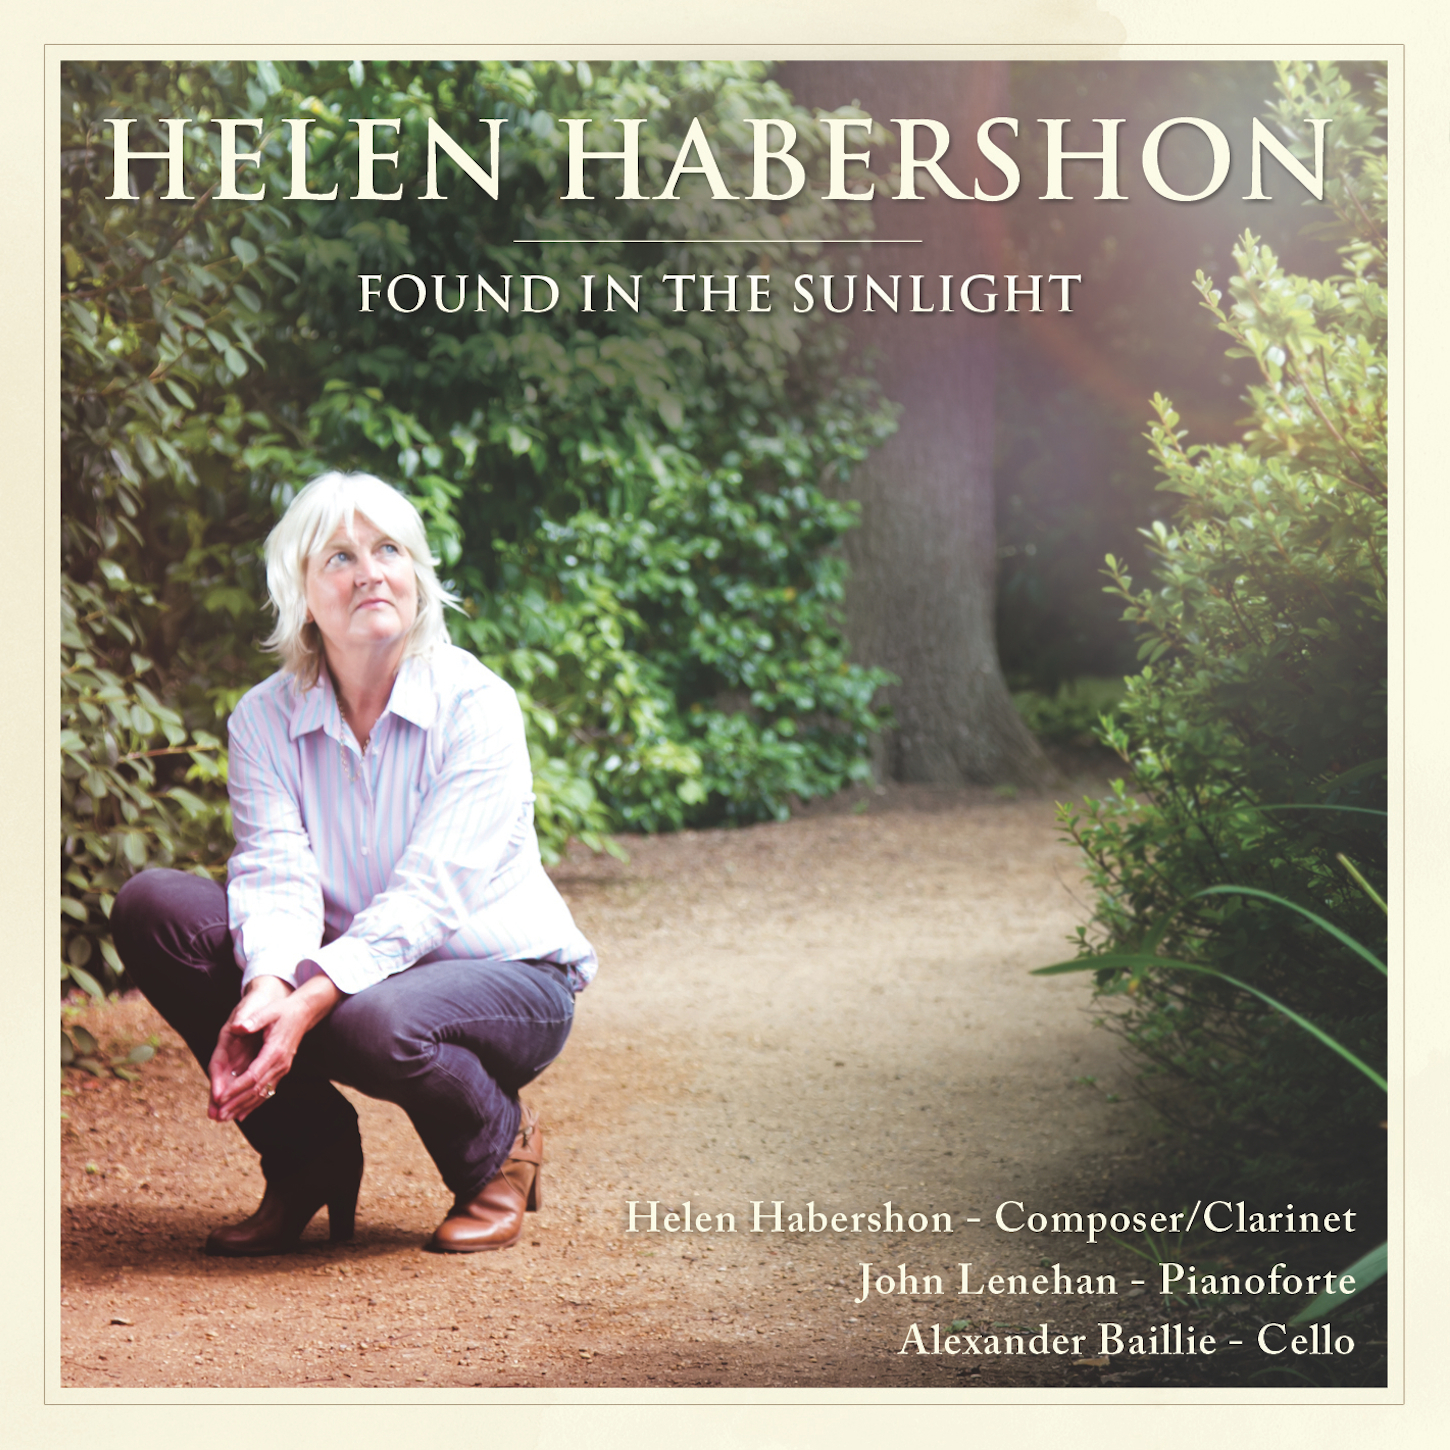 Helen Habershon Found in the Sunlight